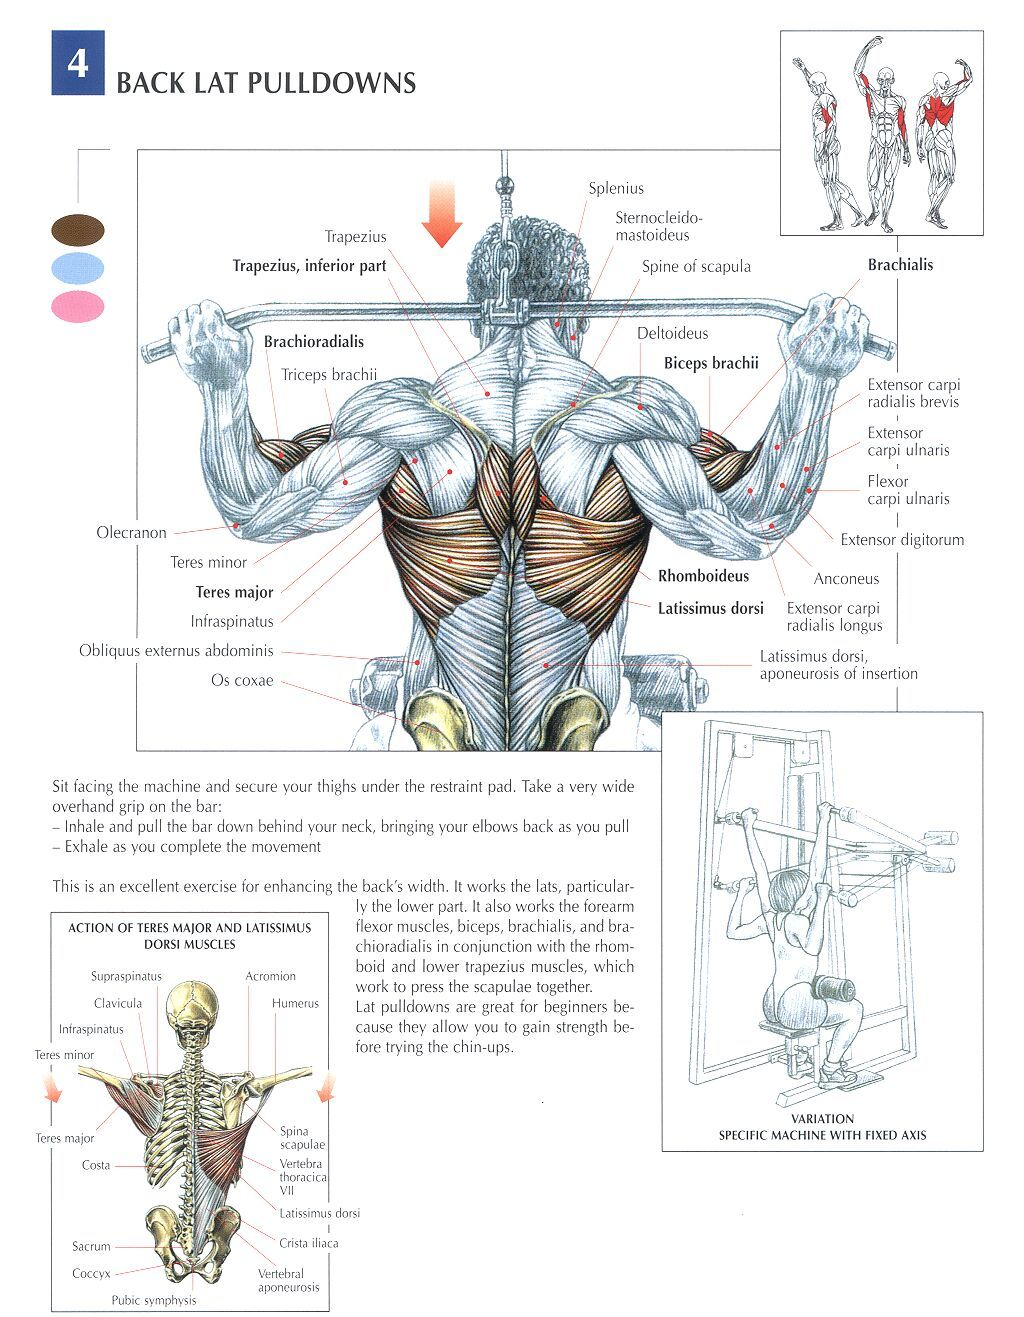 5 Great Back Exercises To Build A Back Of Steel | Business Board ...